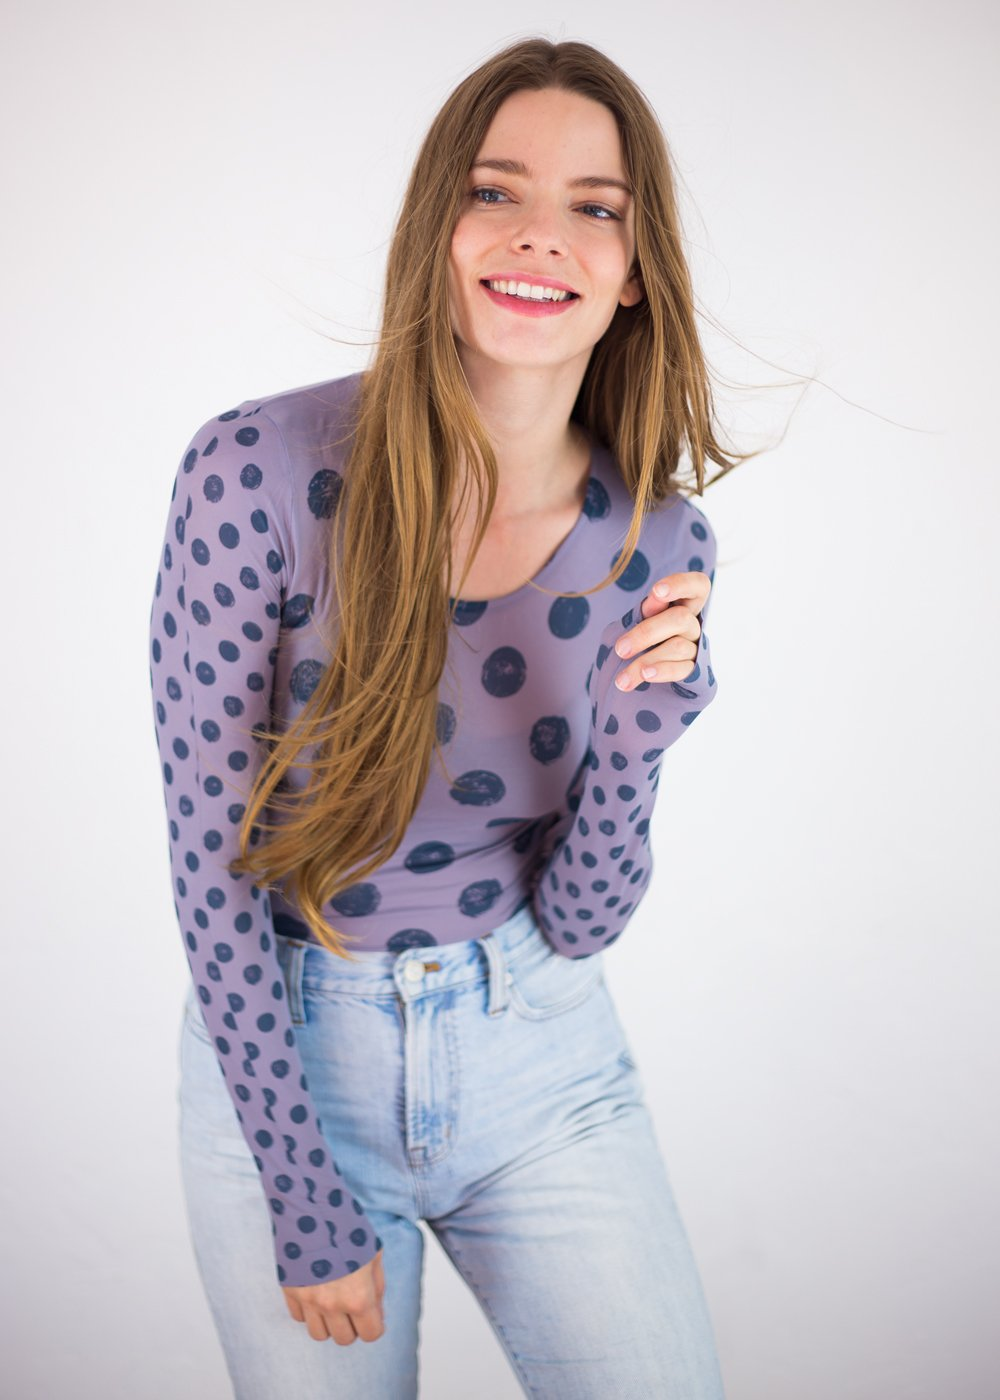 Grunge Polka Dot Second Skin Crew Neck Top